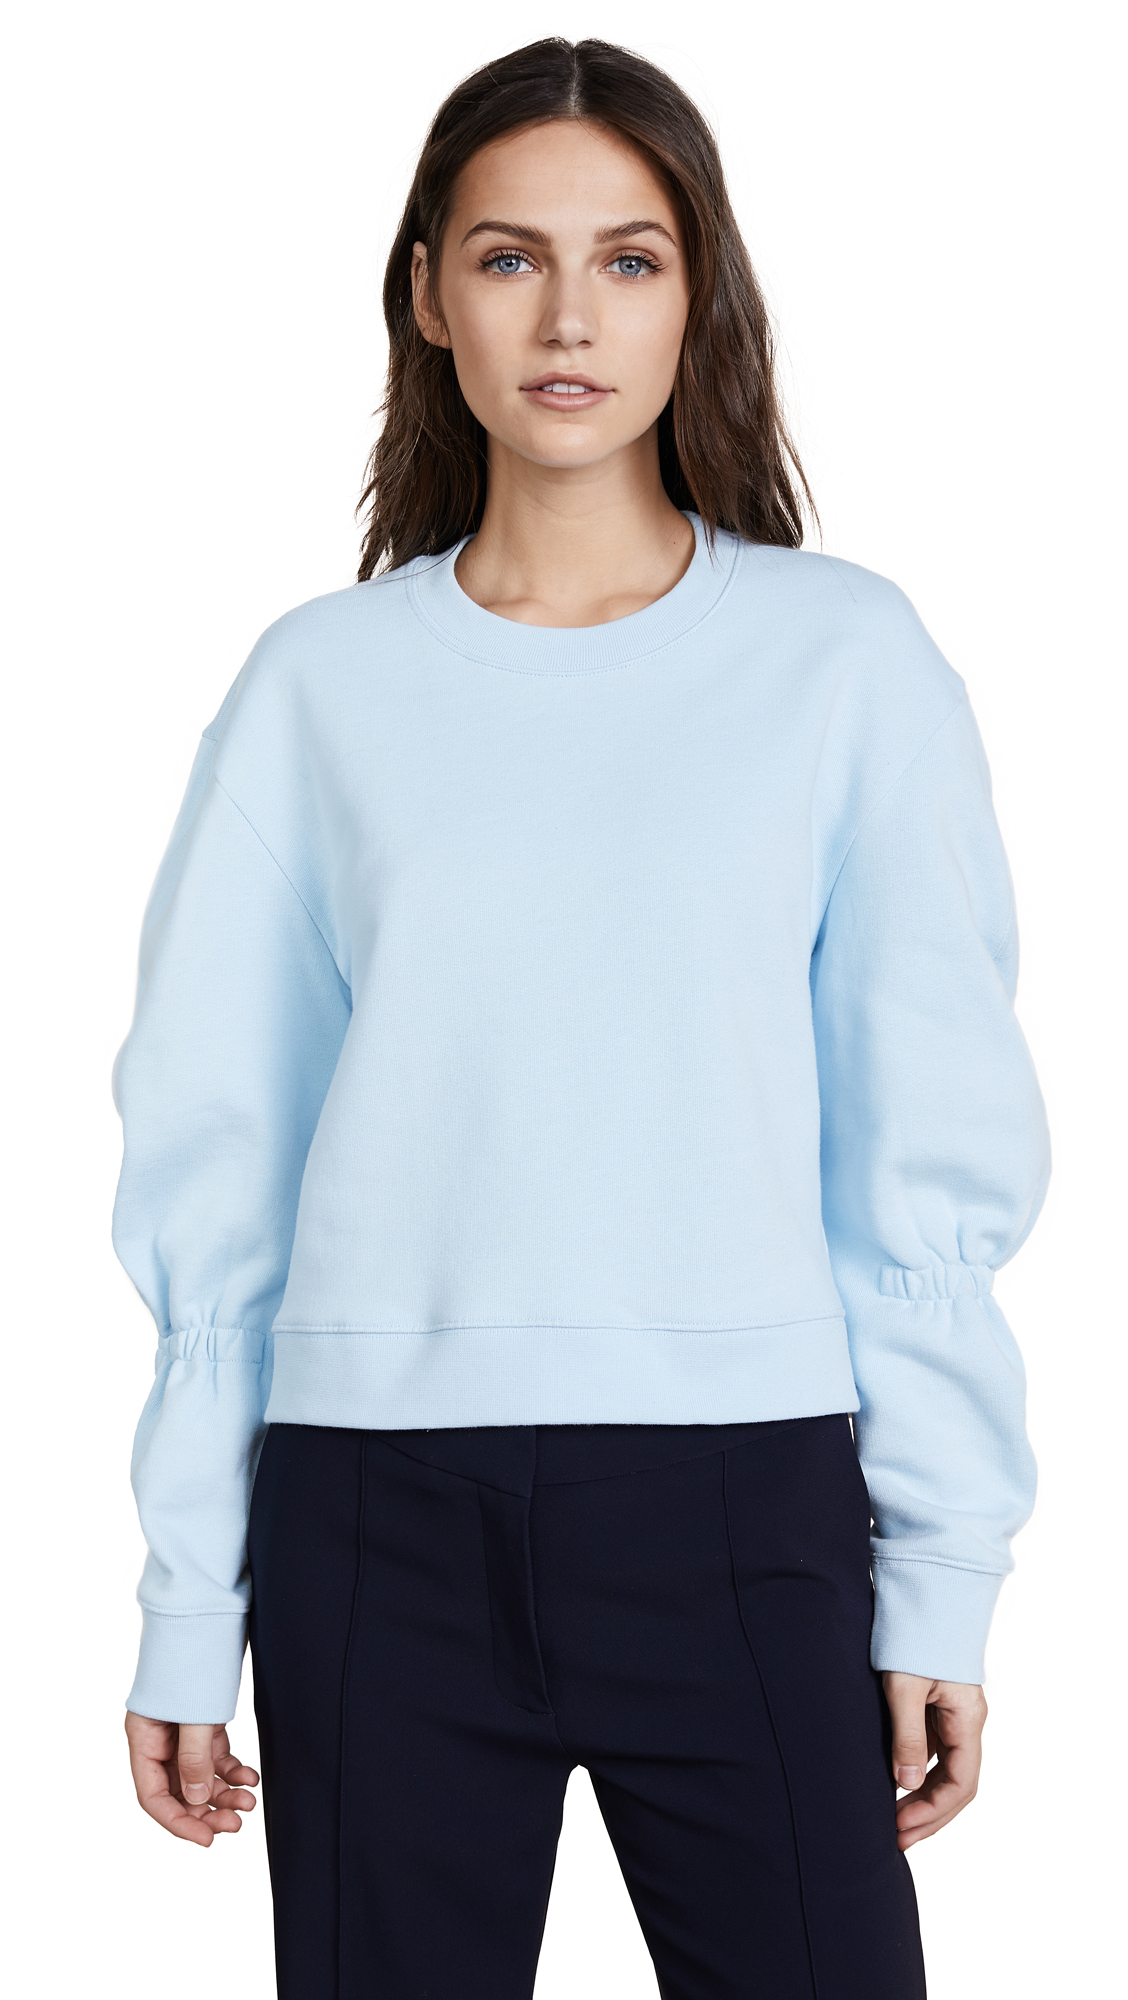 Tibi Sculpted Sleeve Sweatshirt In Baby Blue